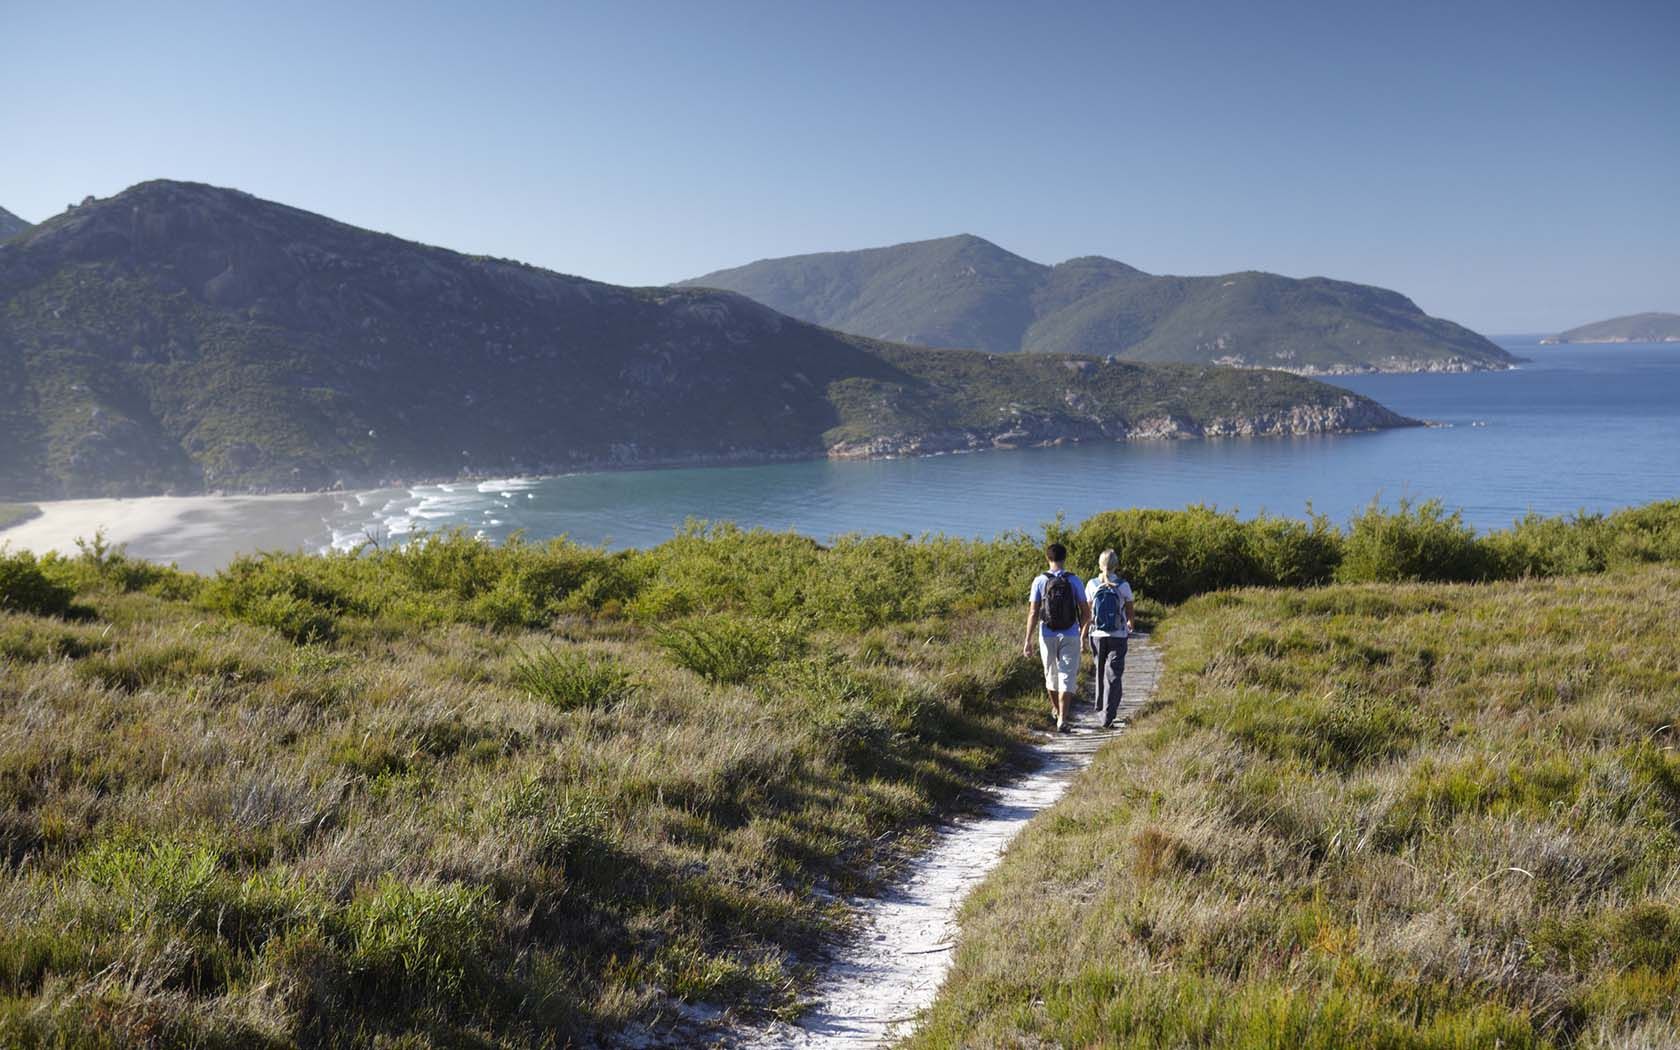 Top 10 things to do at wilsons promontory australian traveller.